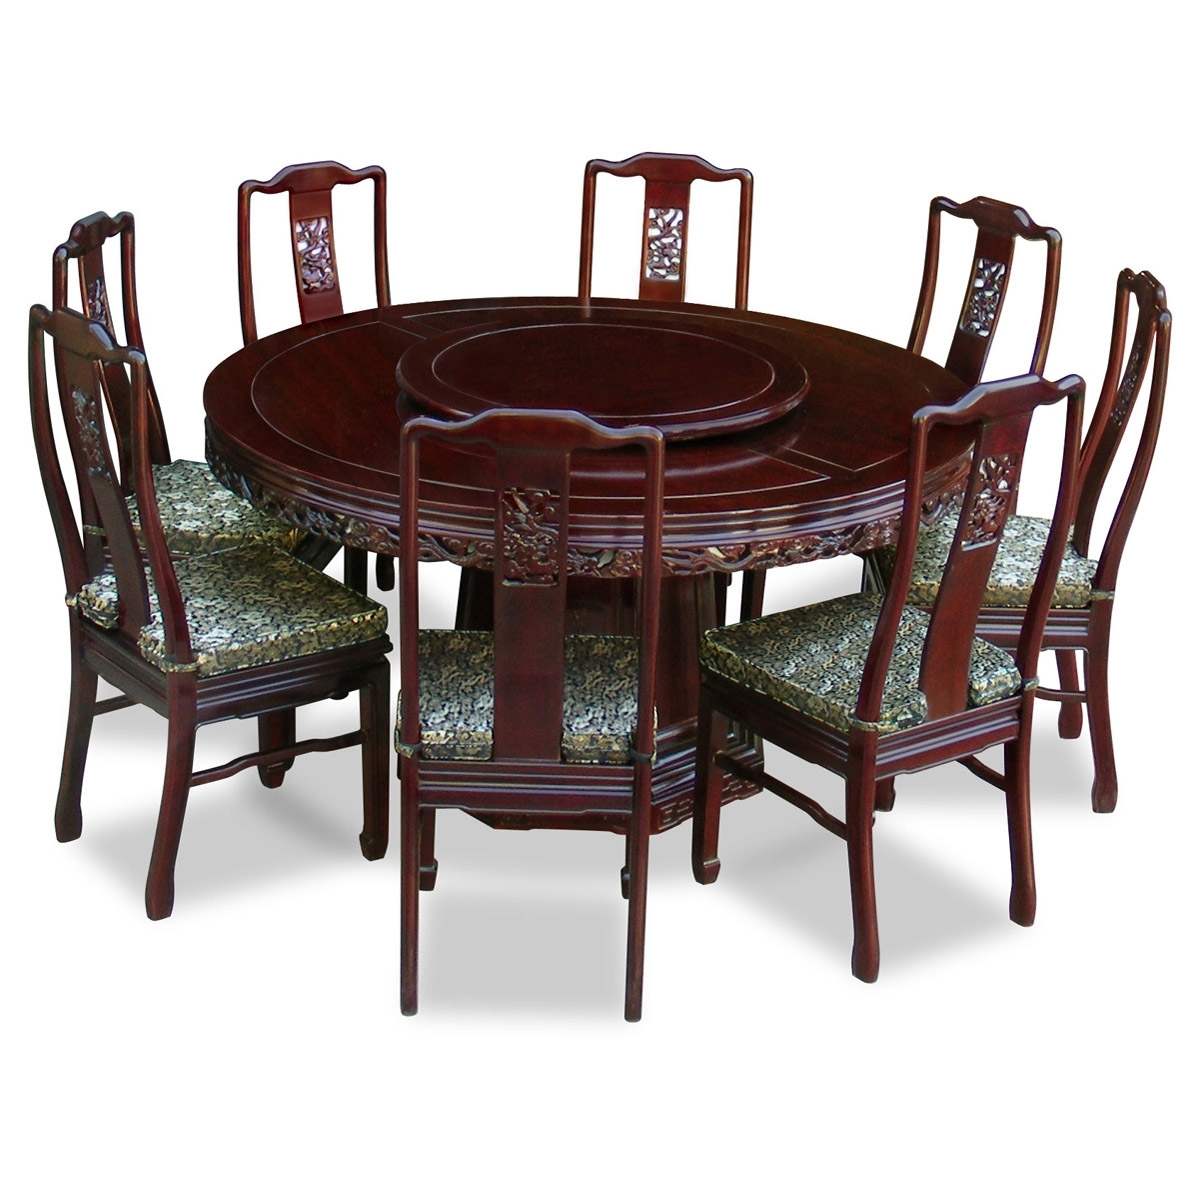 60In Rosewood Dragon Round Dining Table With 8 Chairs inside Current Dining Tables With 8 Chairs